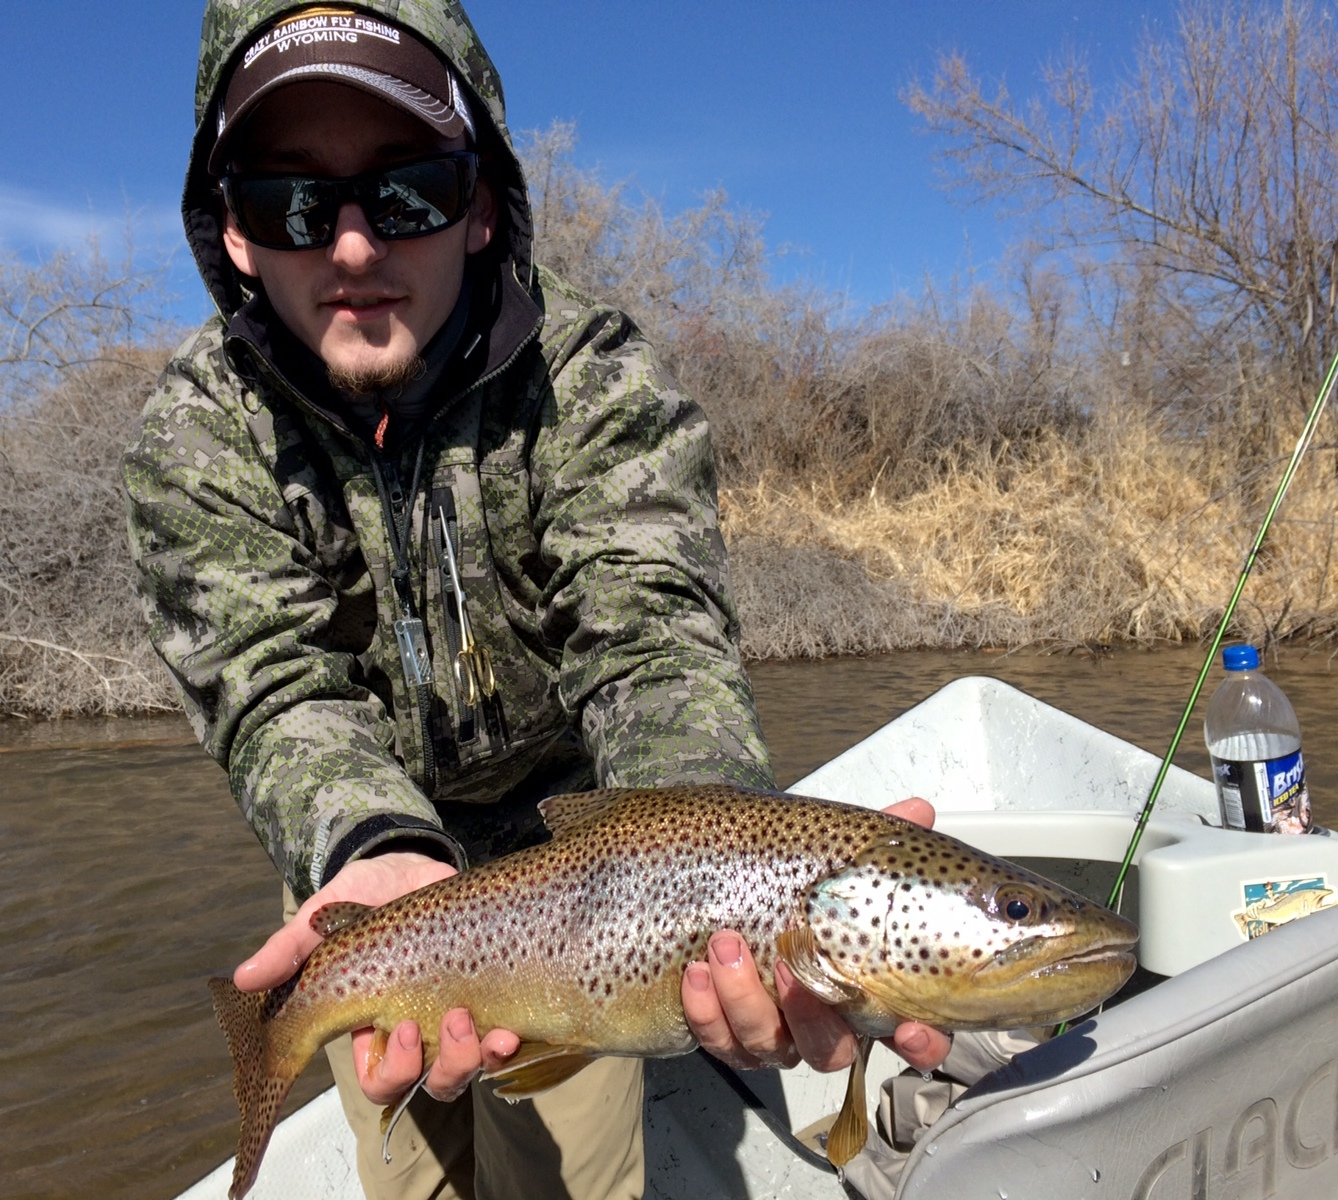 Kickoff to Spring Fishing on the North Platte!